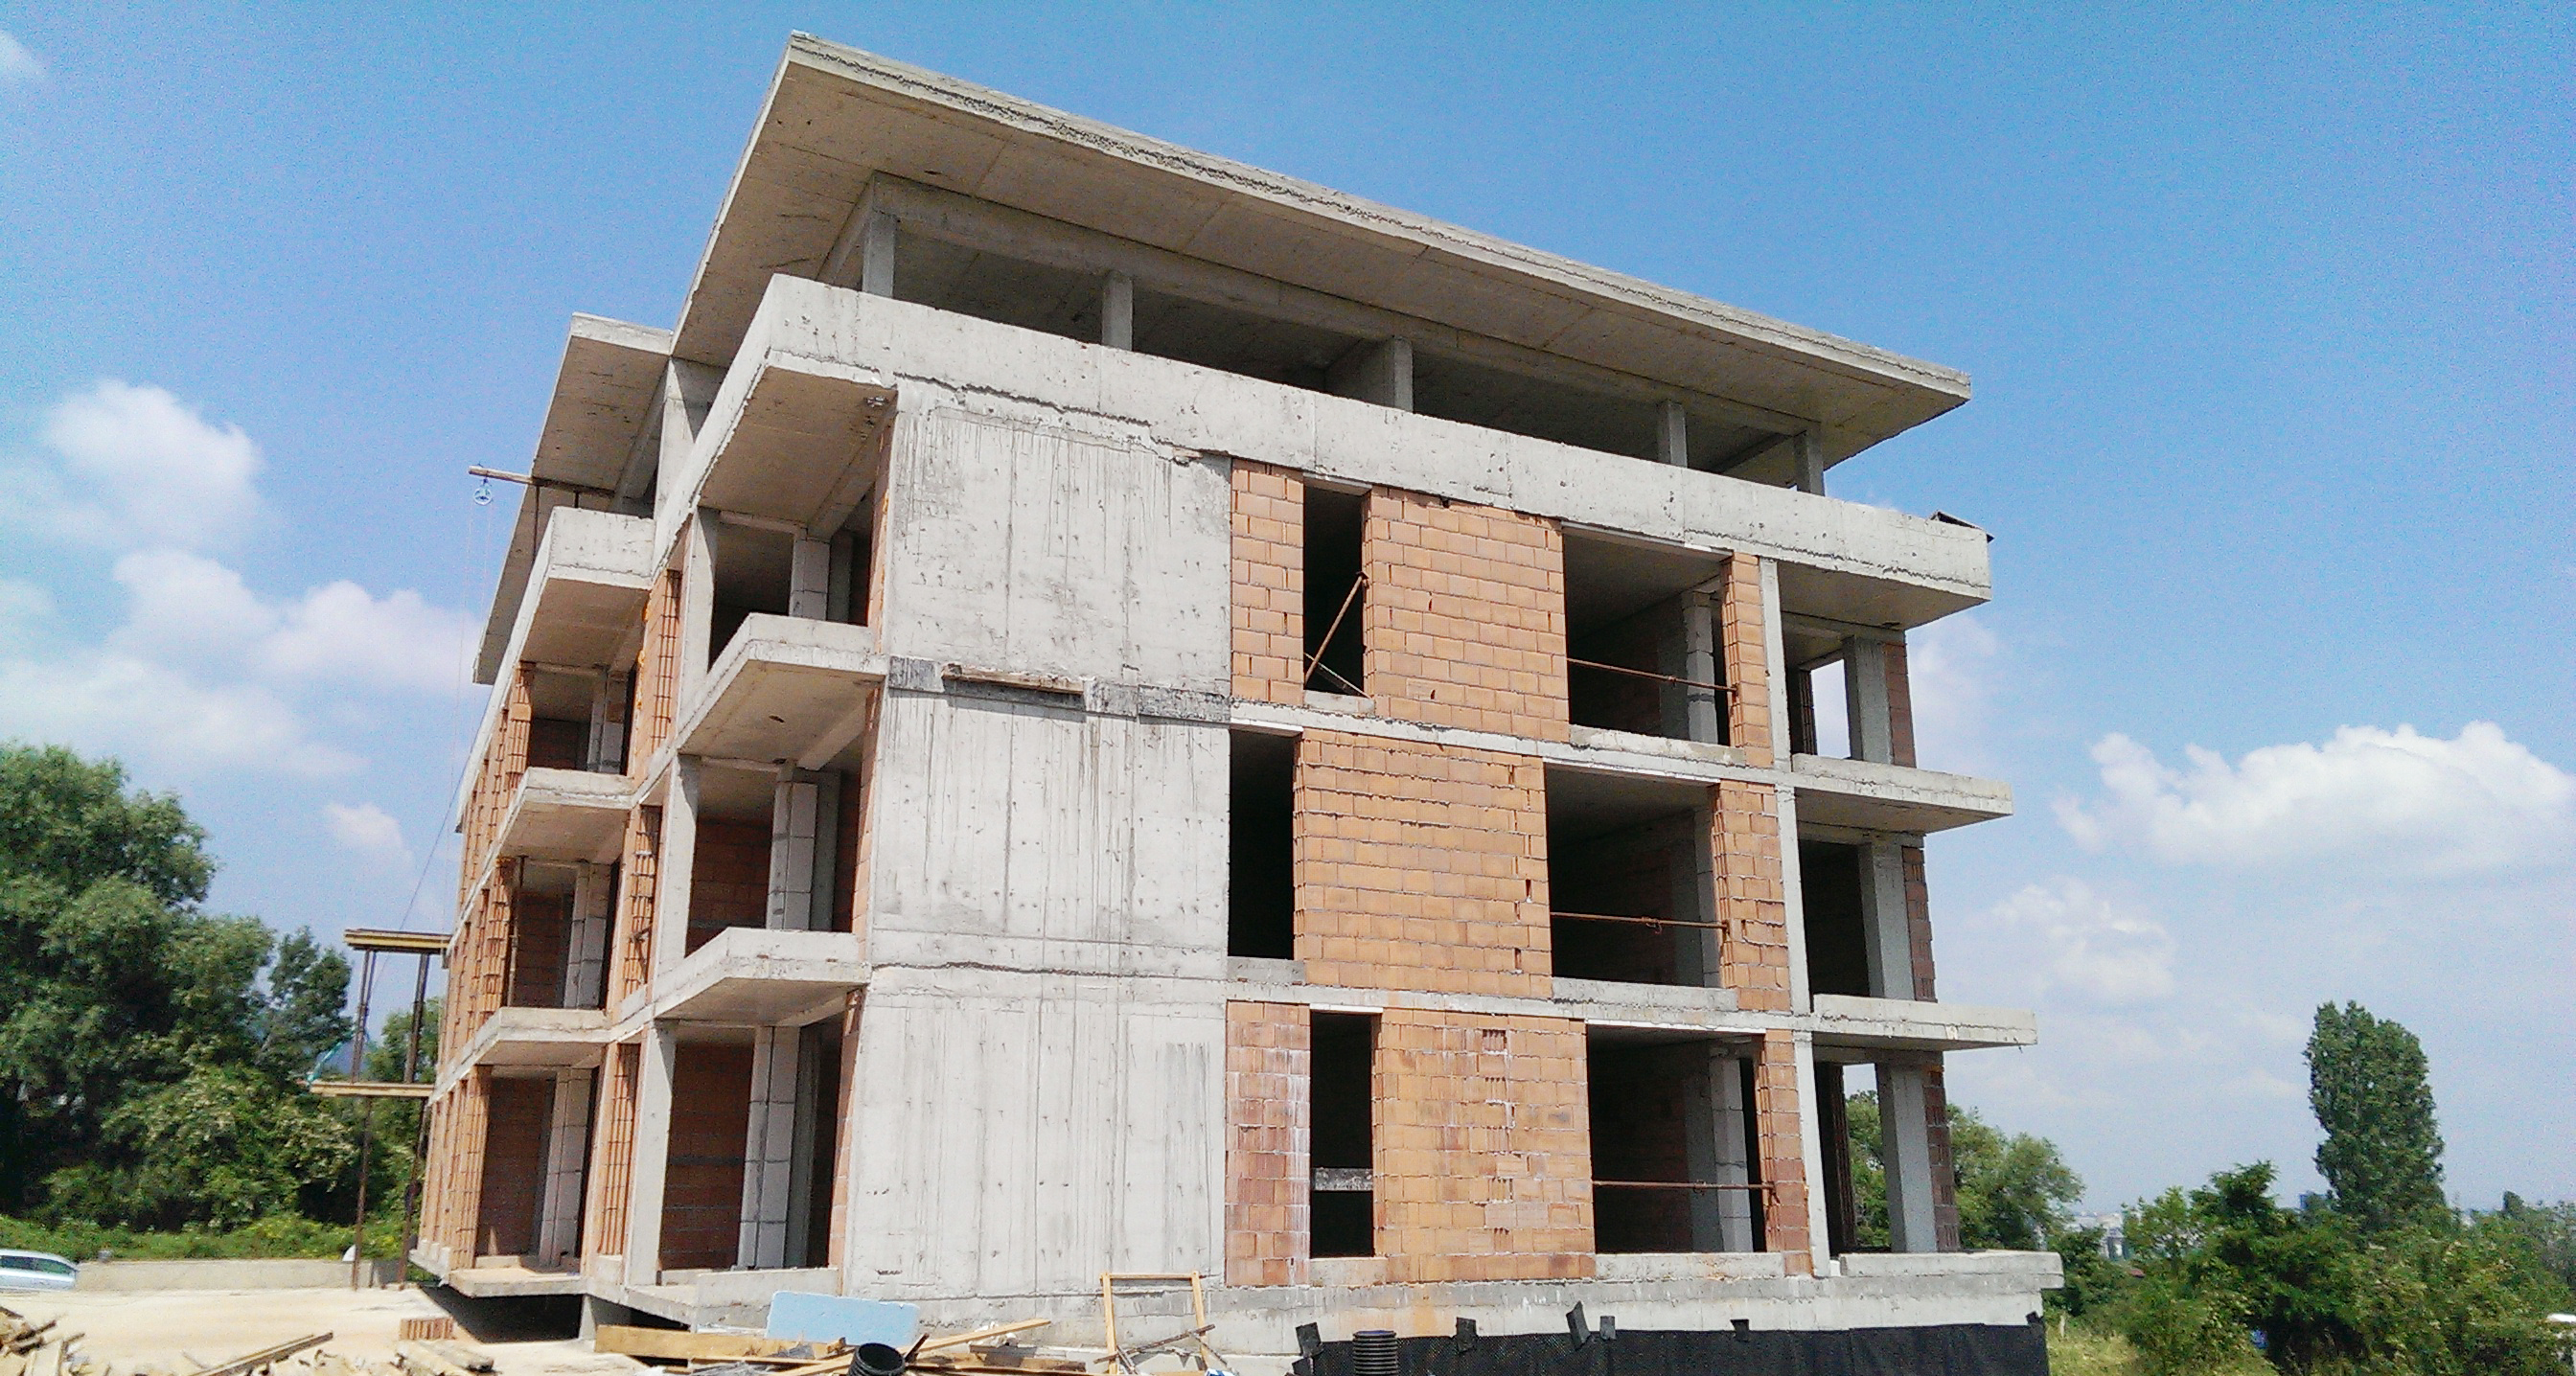 construction  03.07.2015. Building 1